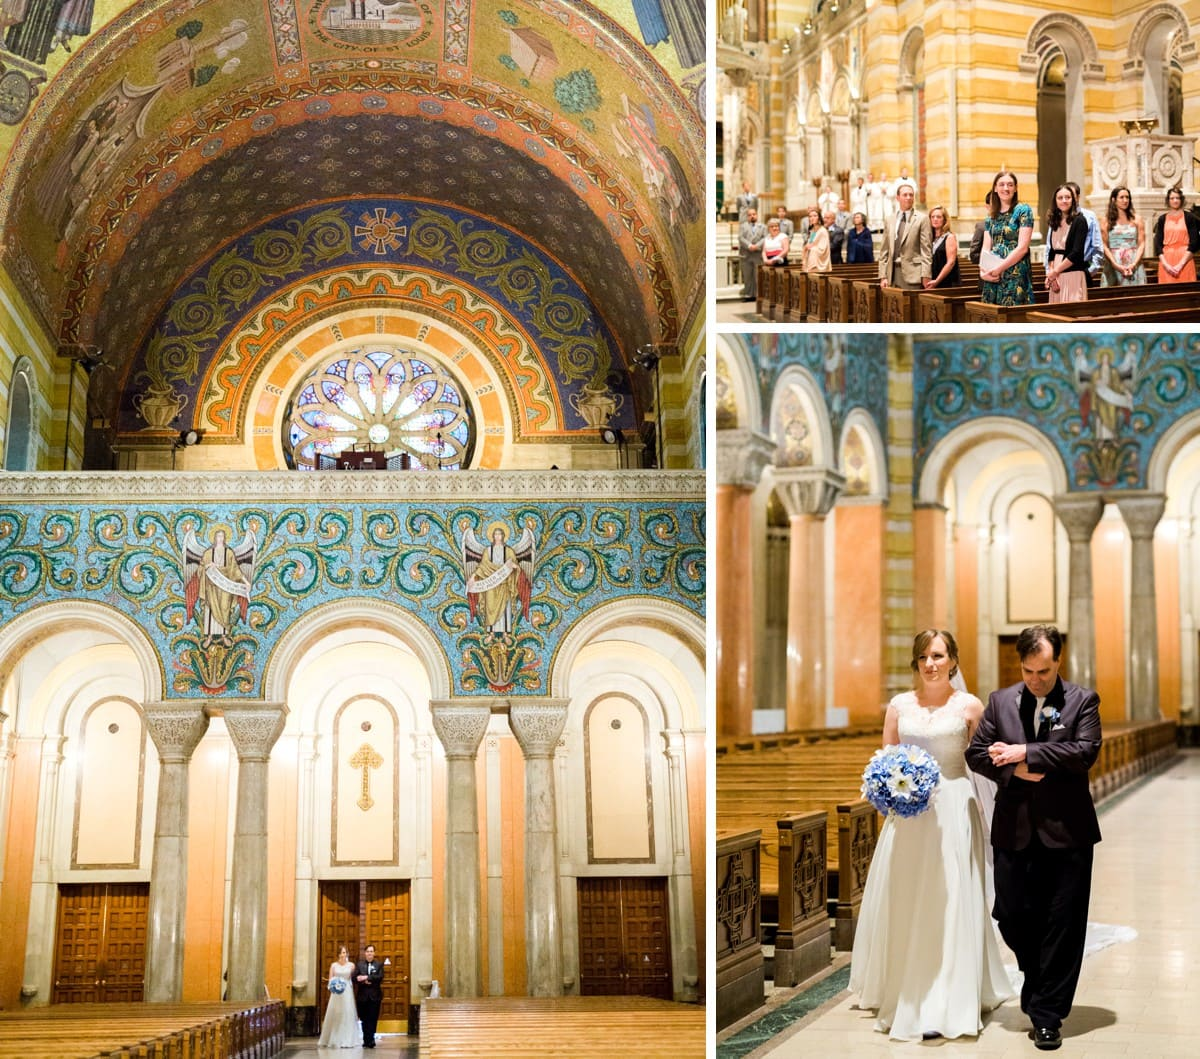 Wedding Gowns St Louis: Cathedral Basilica Of St. Louis Wedding: Lillian And Luis